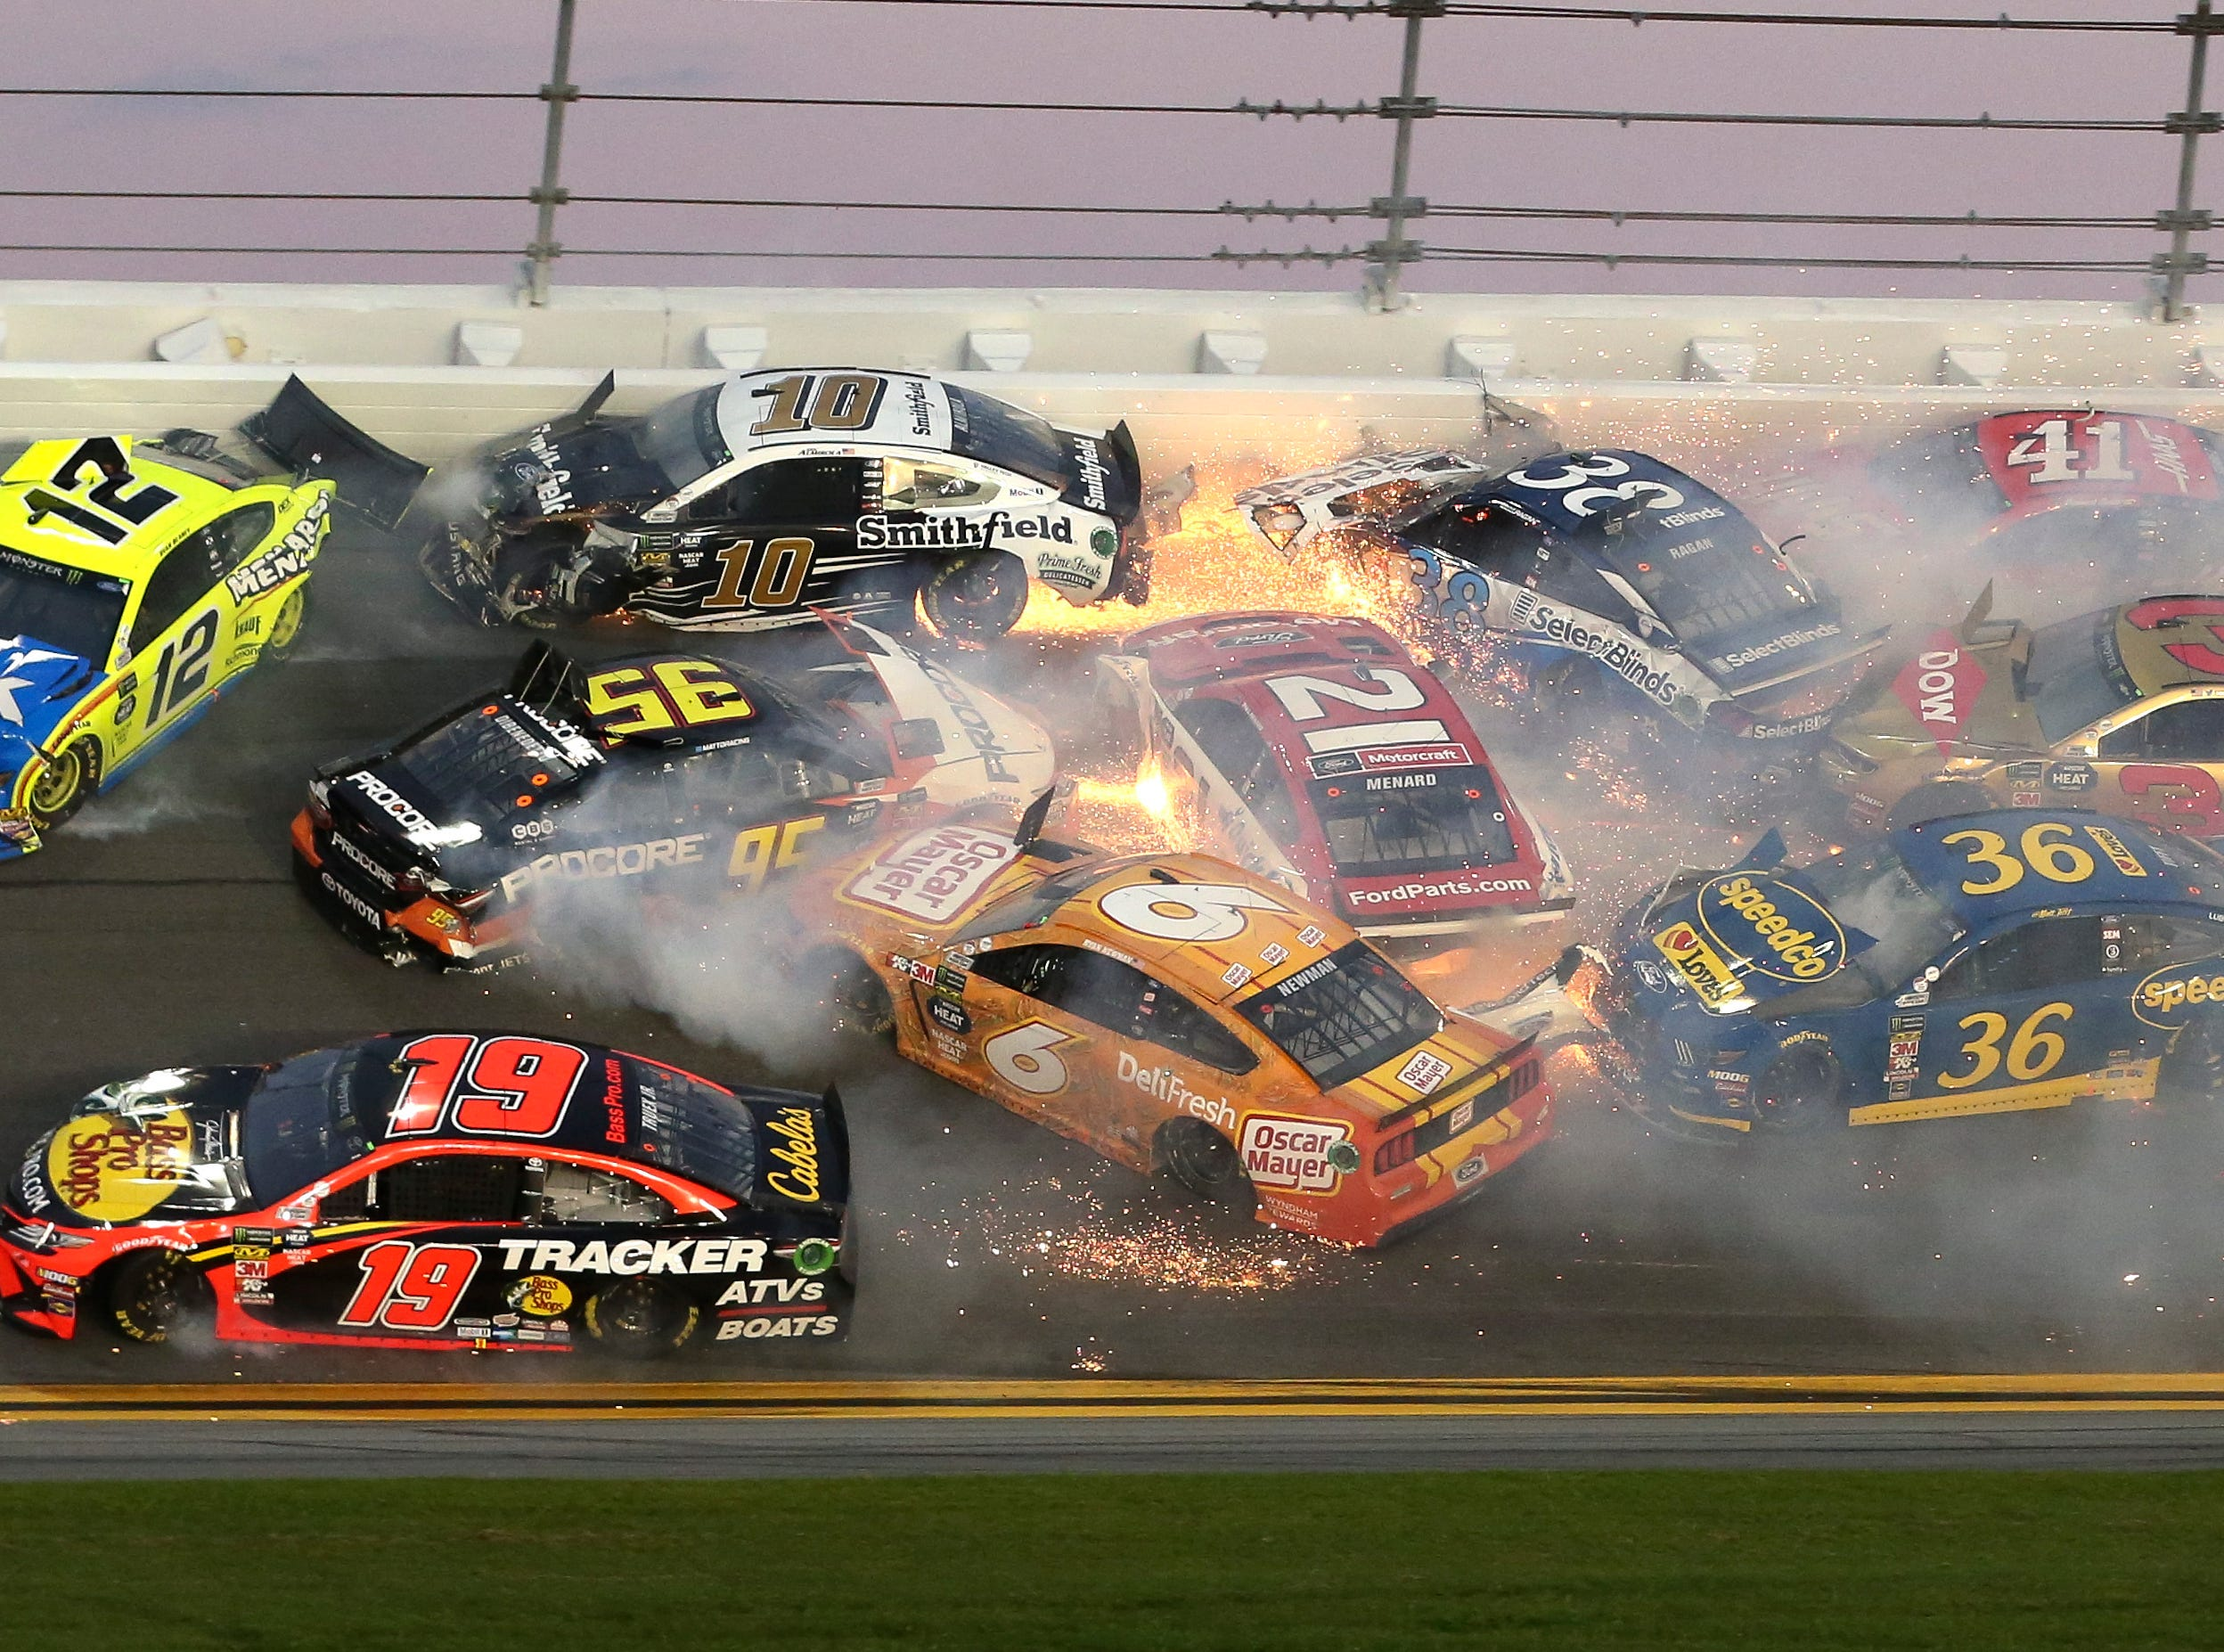 Multiple cars crash in turn 3 during the NASCAR Daytona 500 auto race at Daytona International Speedway.